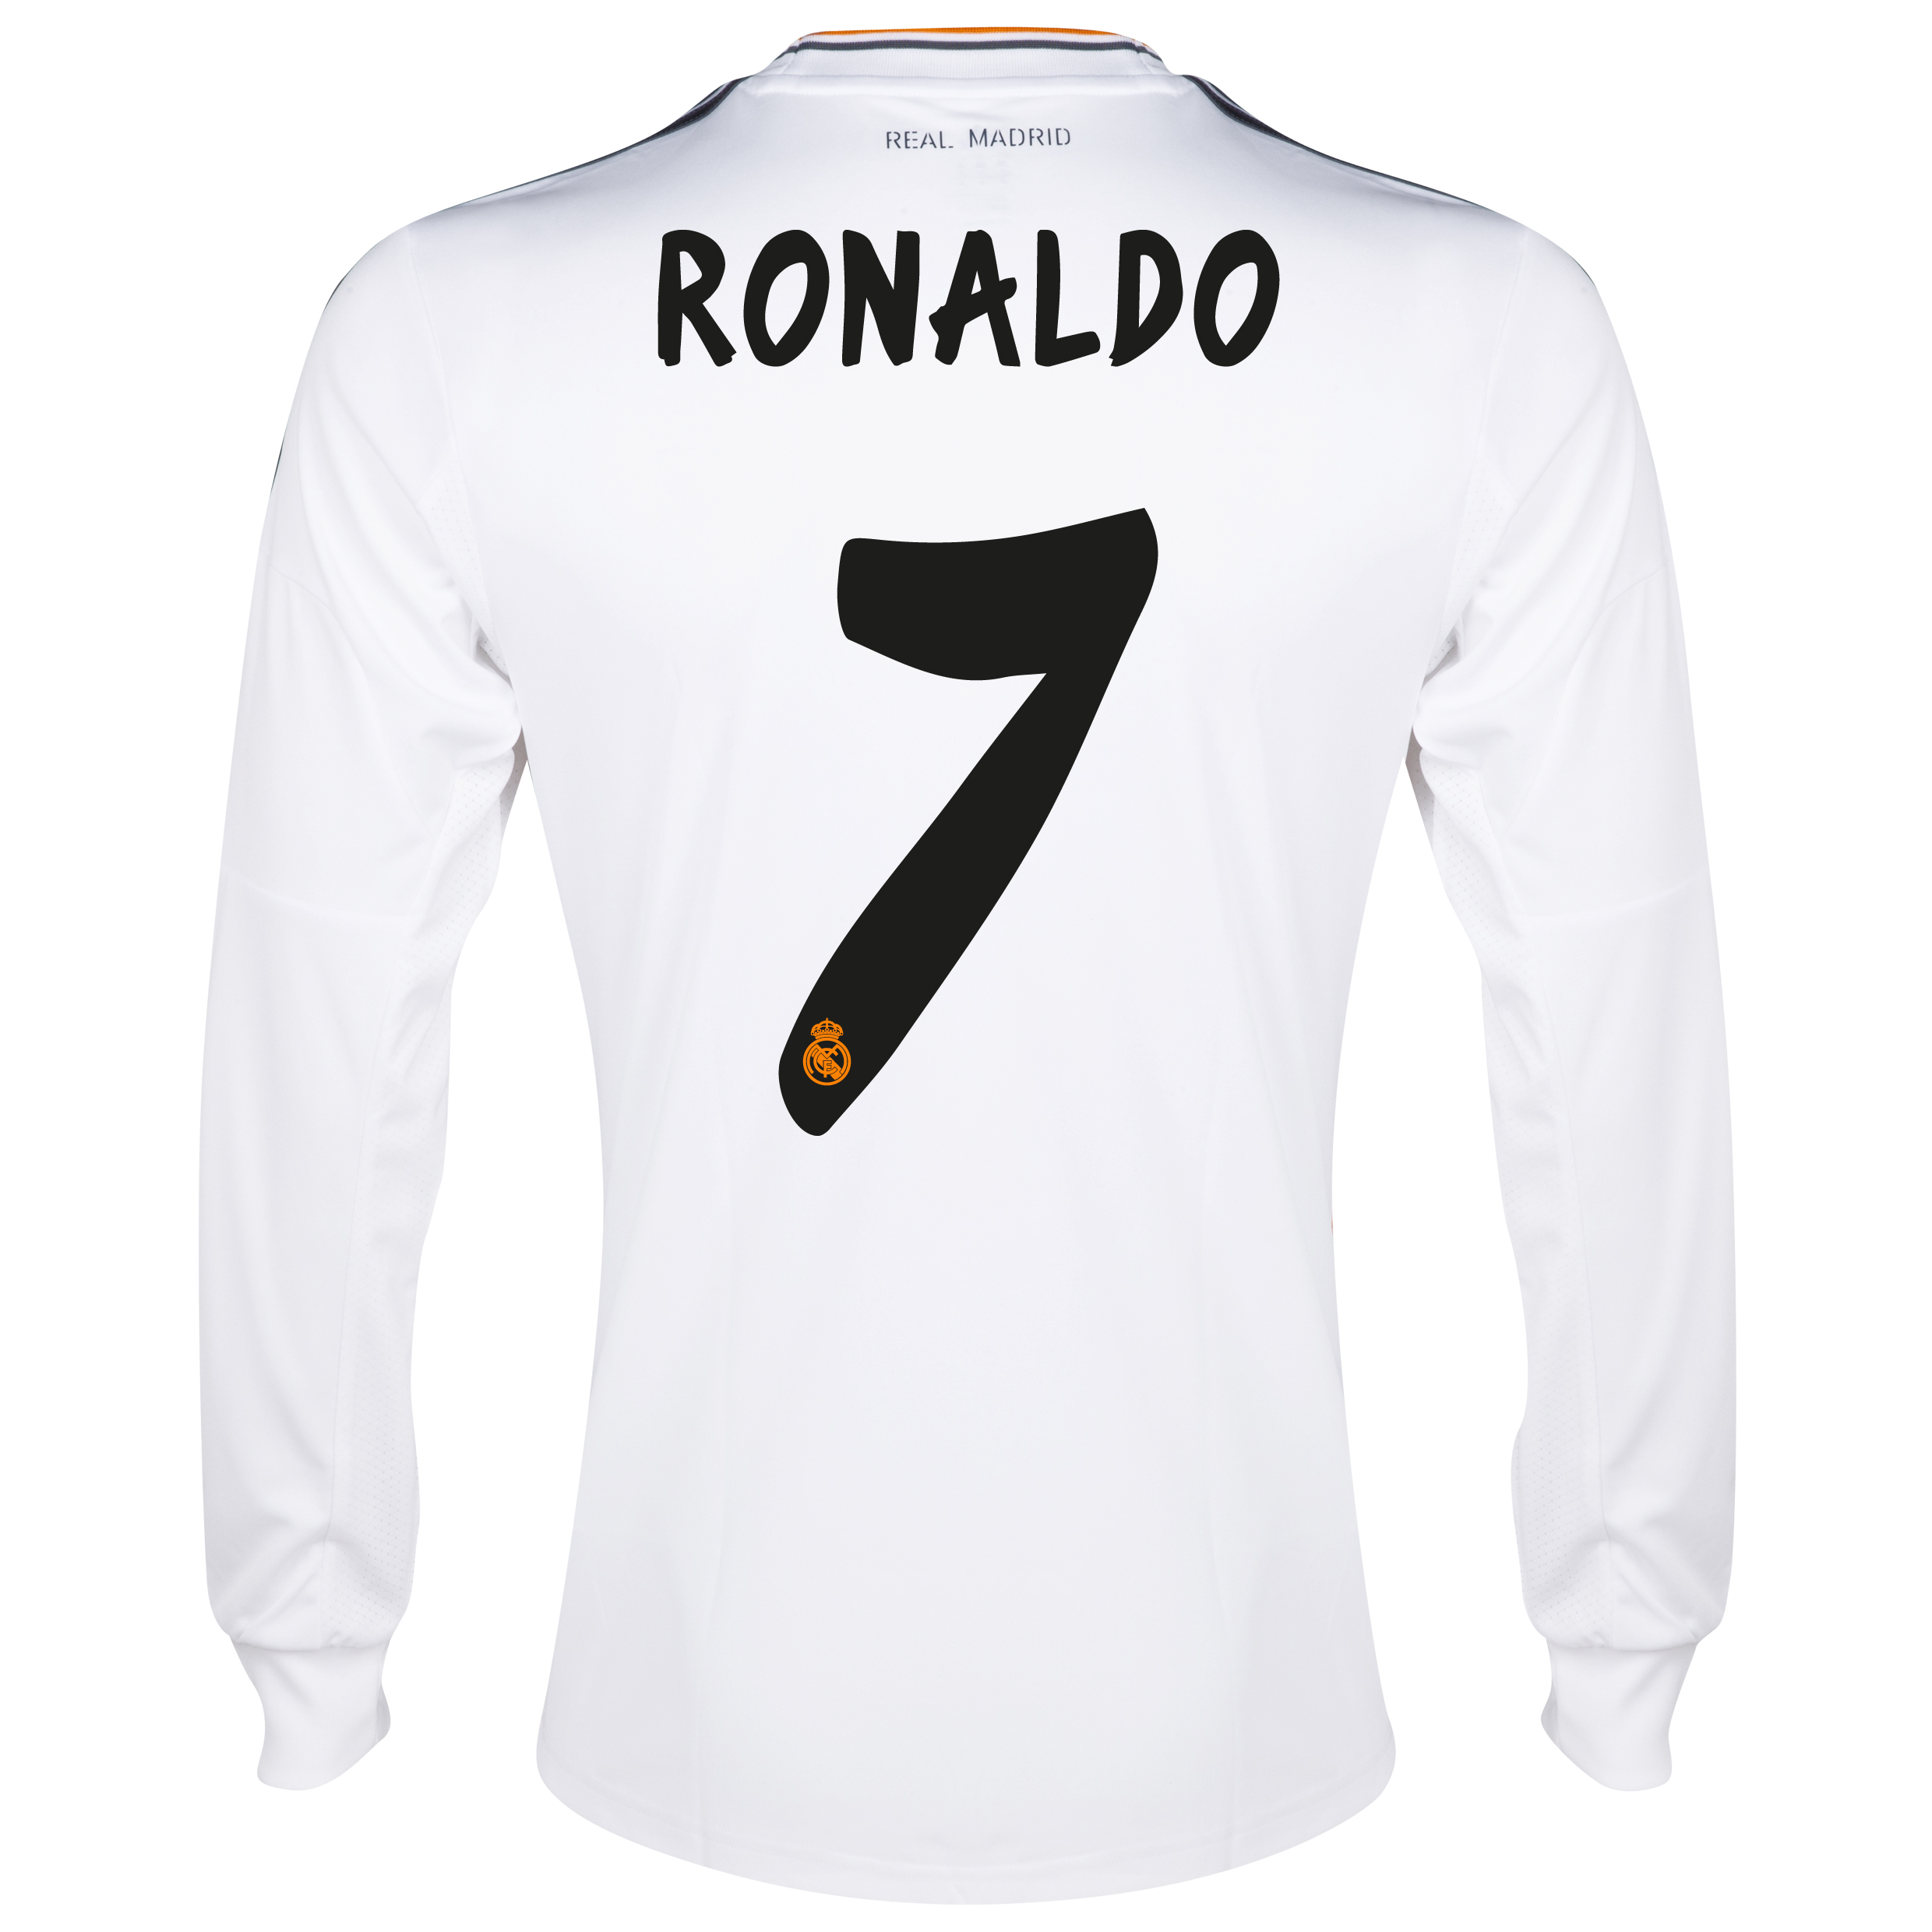 Real Madrid Home Shirt 2013/14 - Long Sleeve with Ronaldo 7 printing